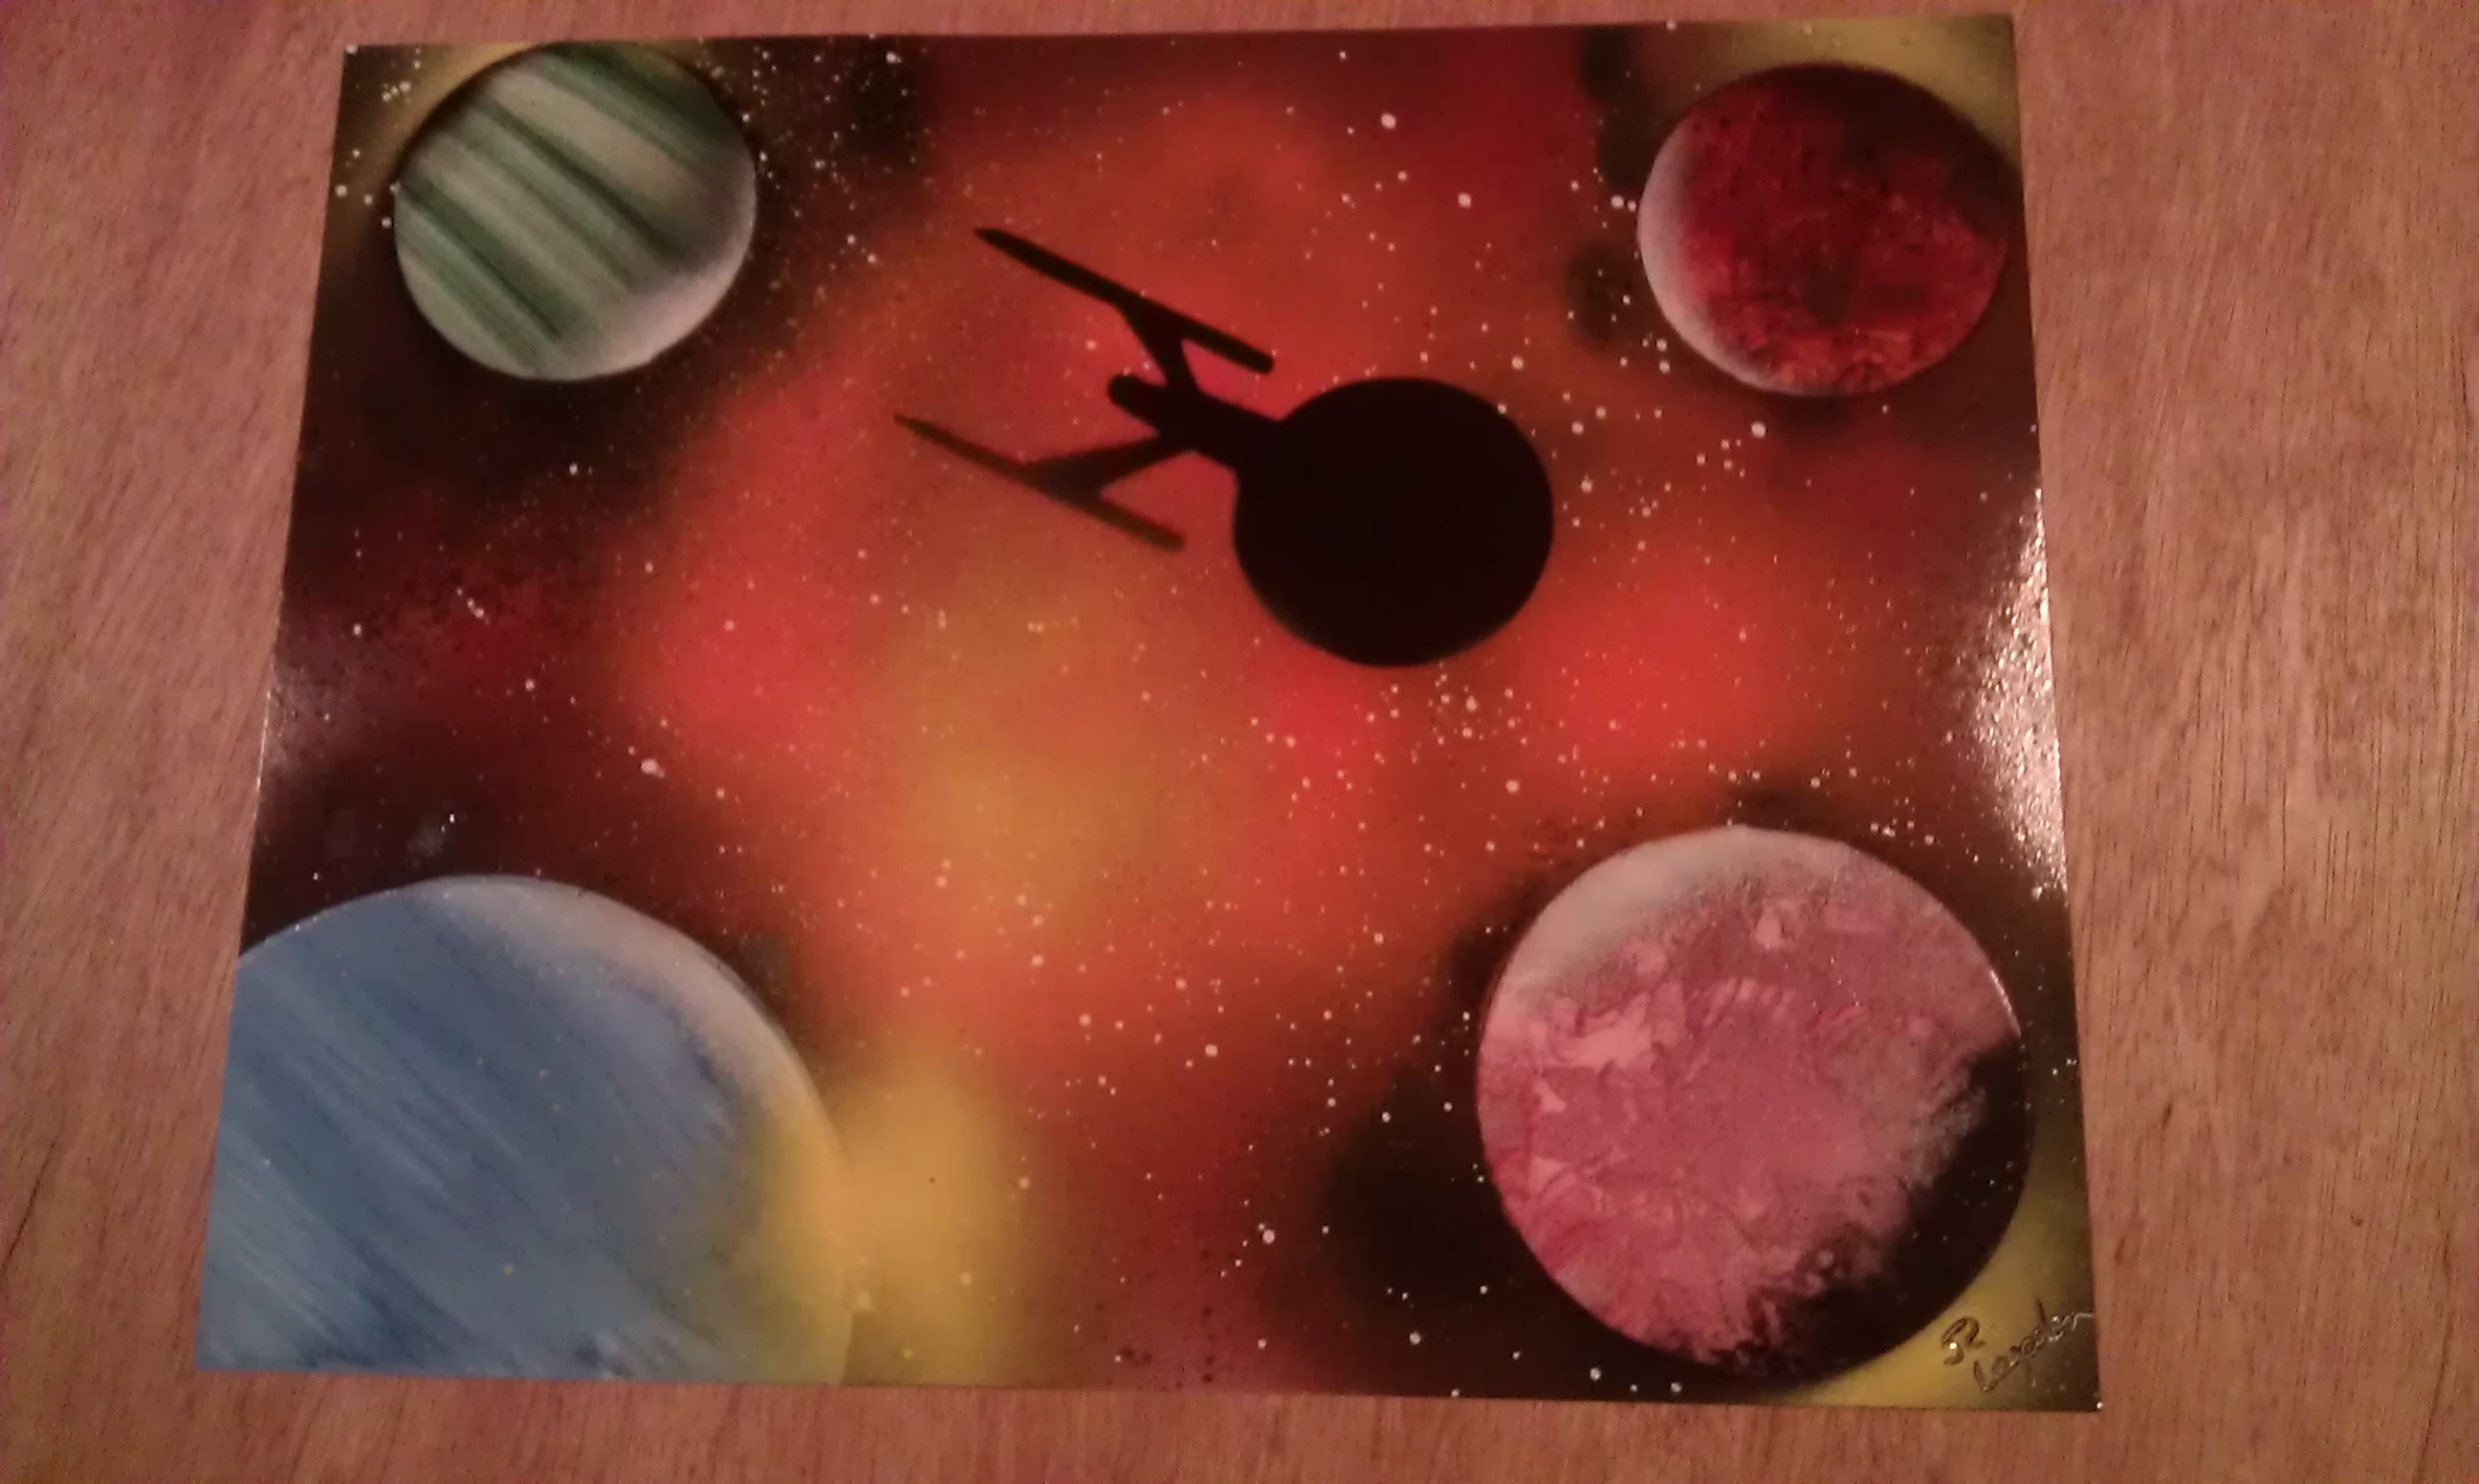 USS Enterprise Painting